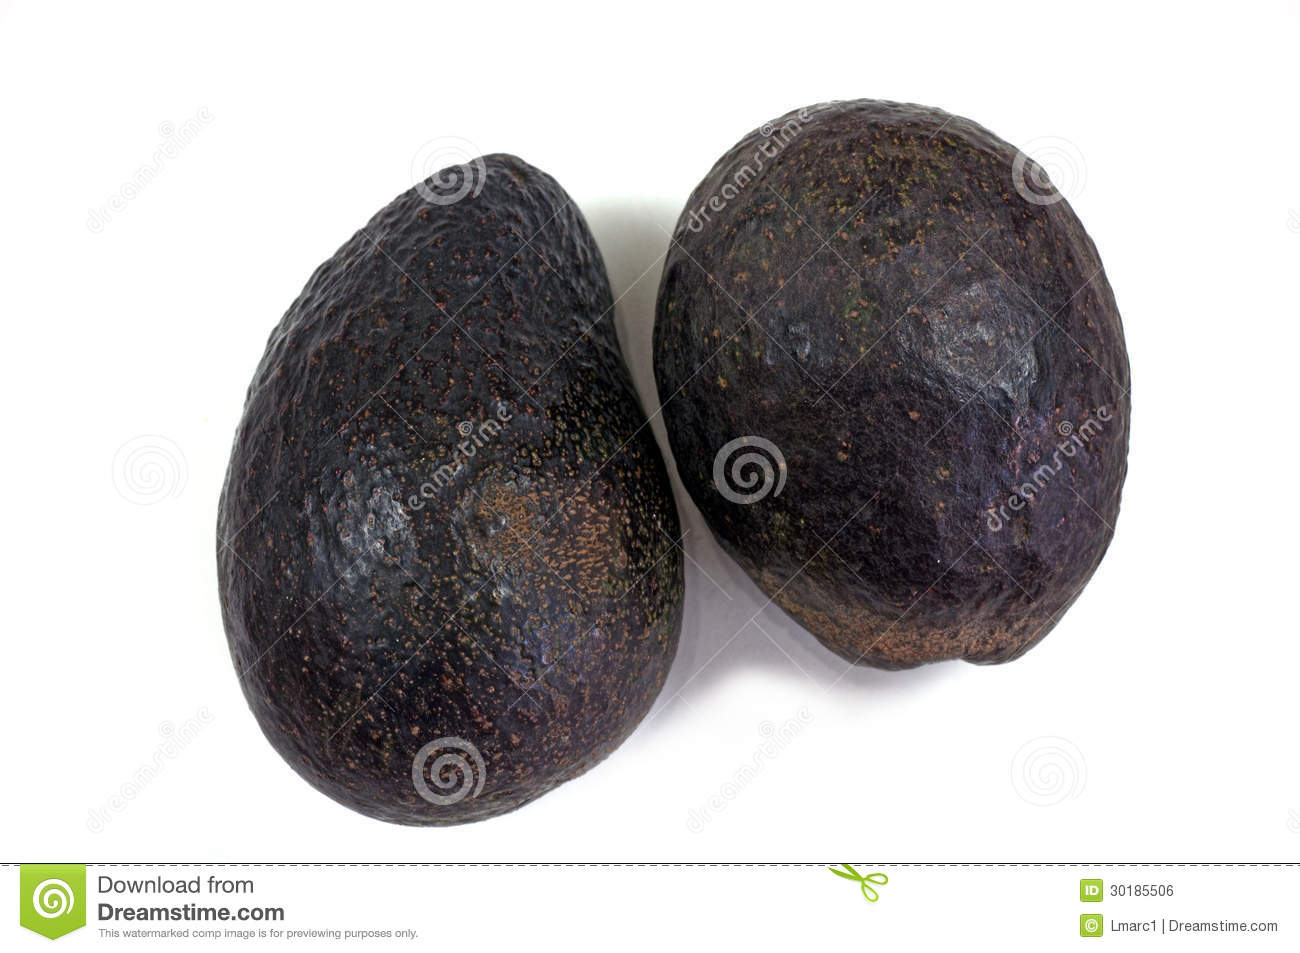 how to know when an avocado is ripe